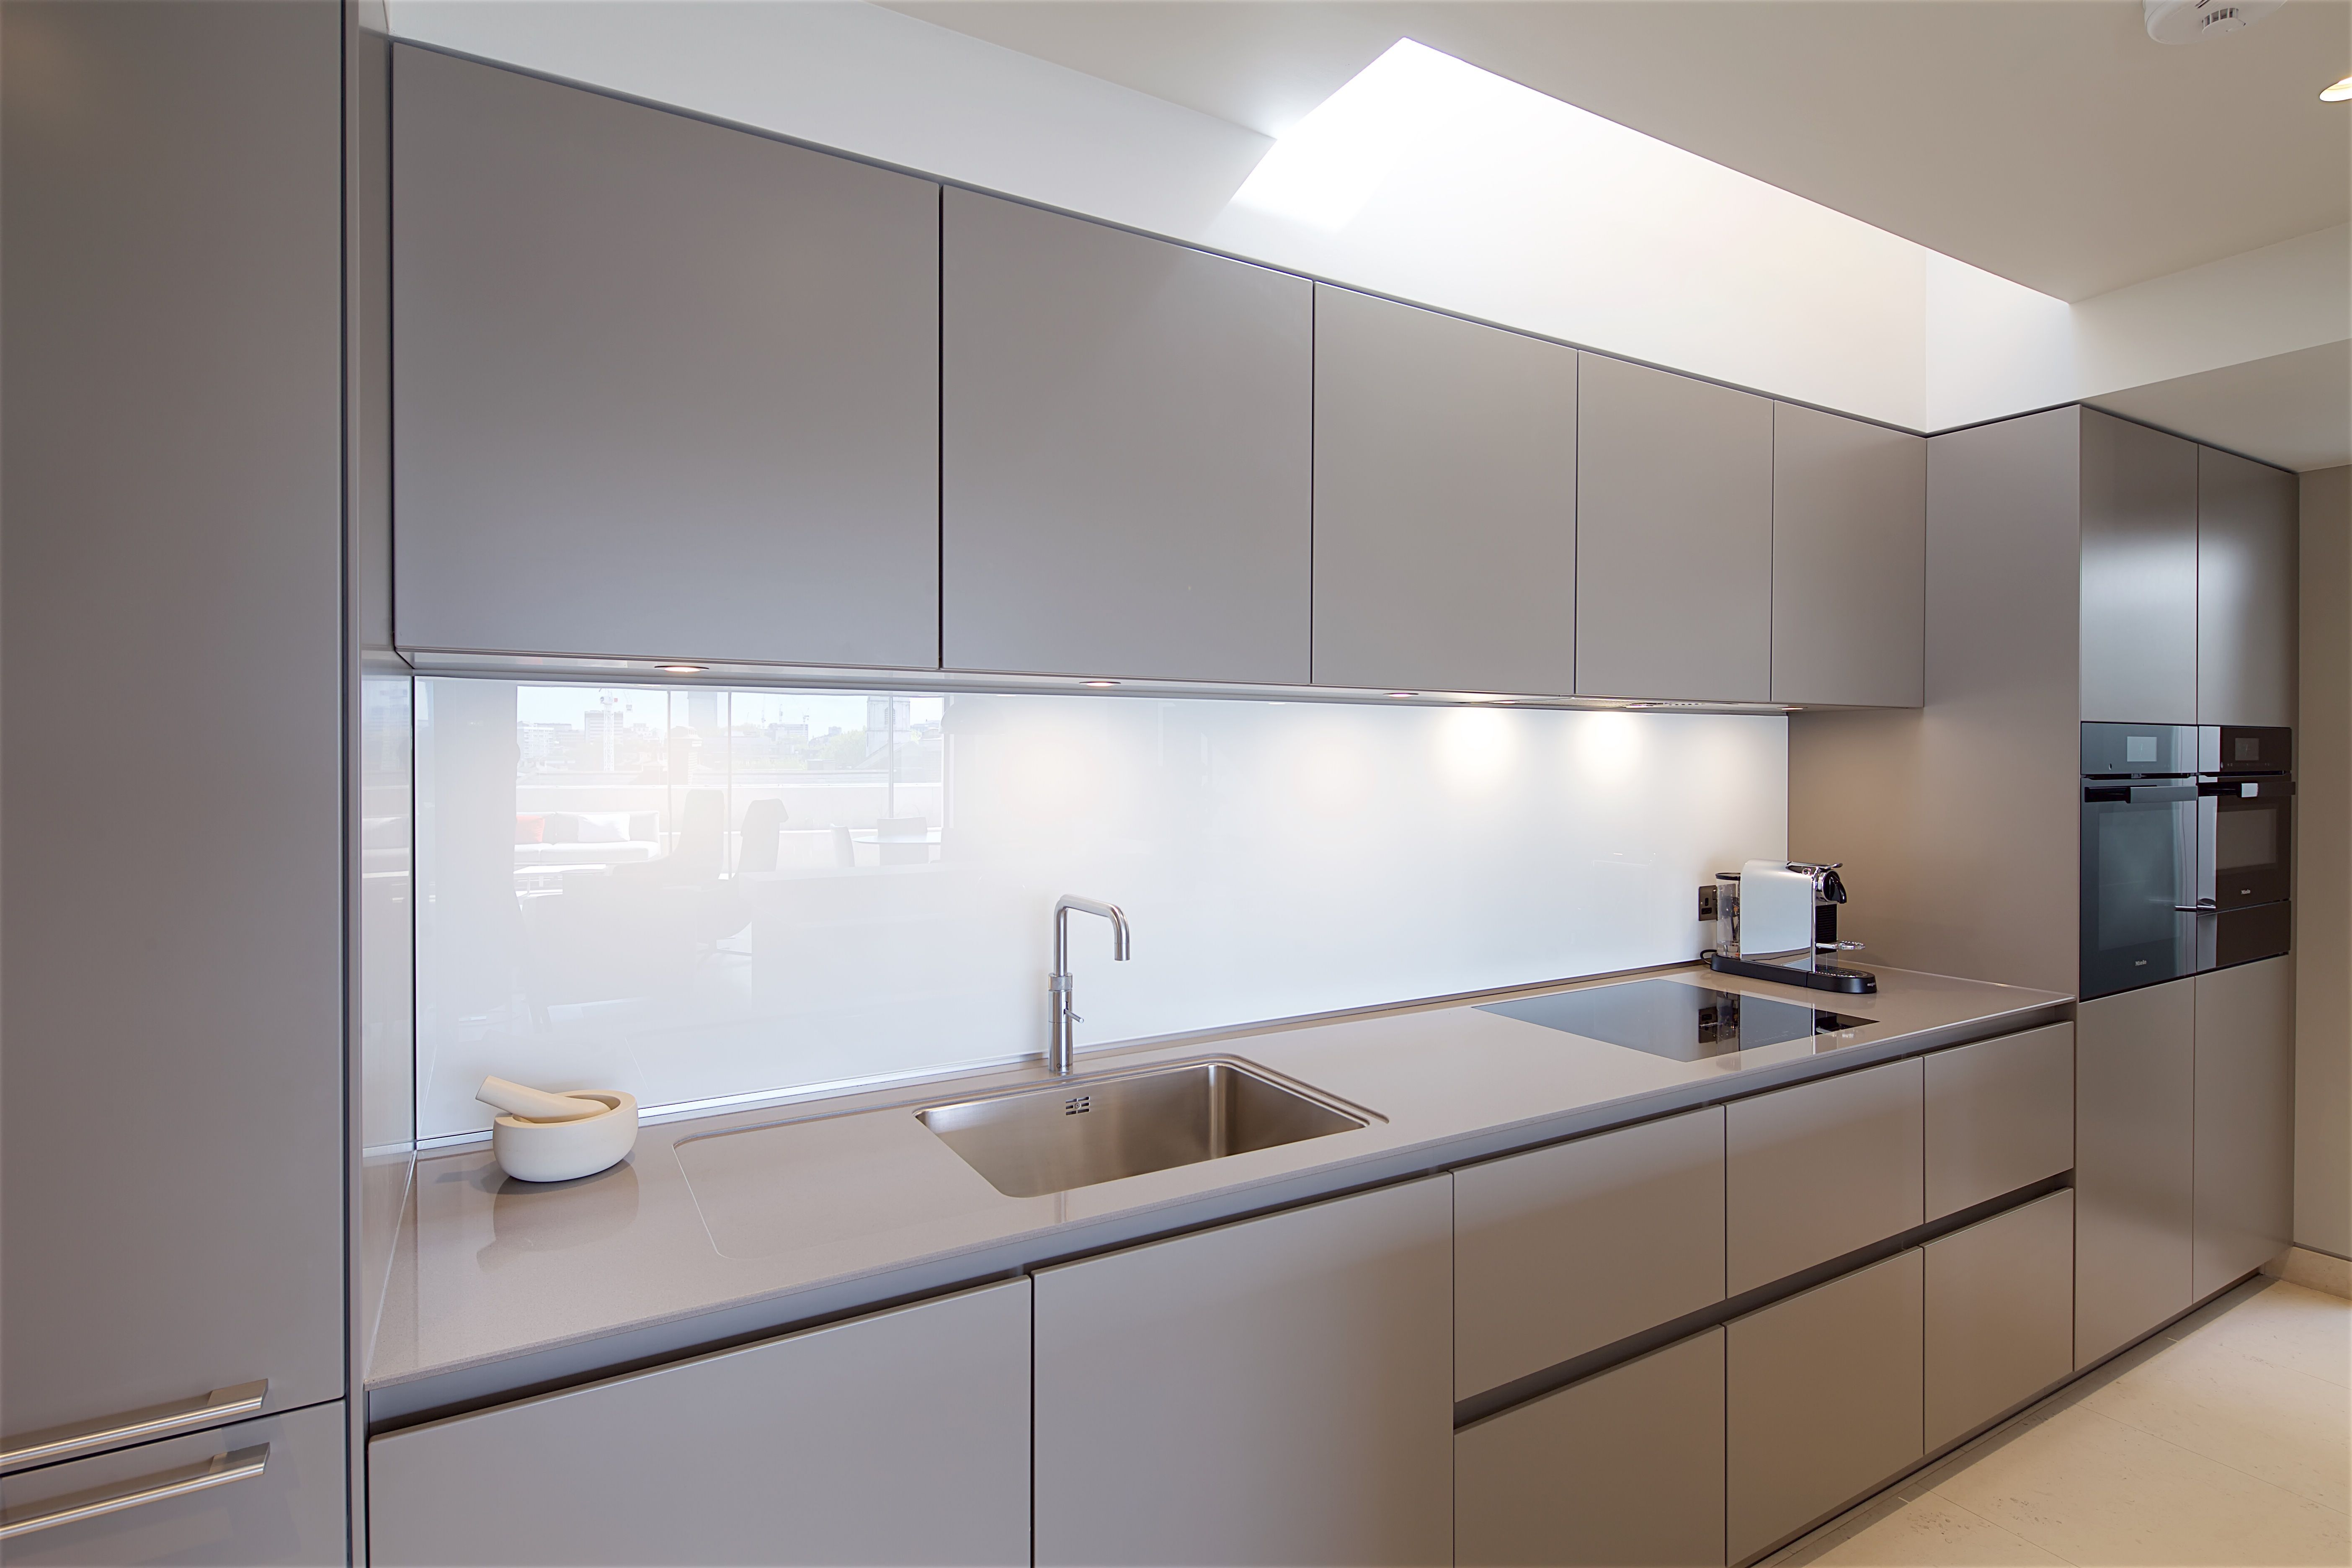 Bulthaup B3 Kitchen In City Apartment Matt Lacquer In